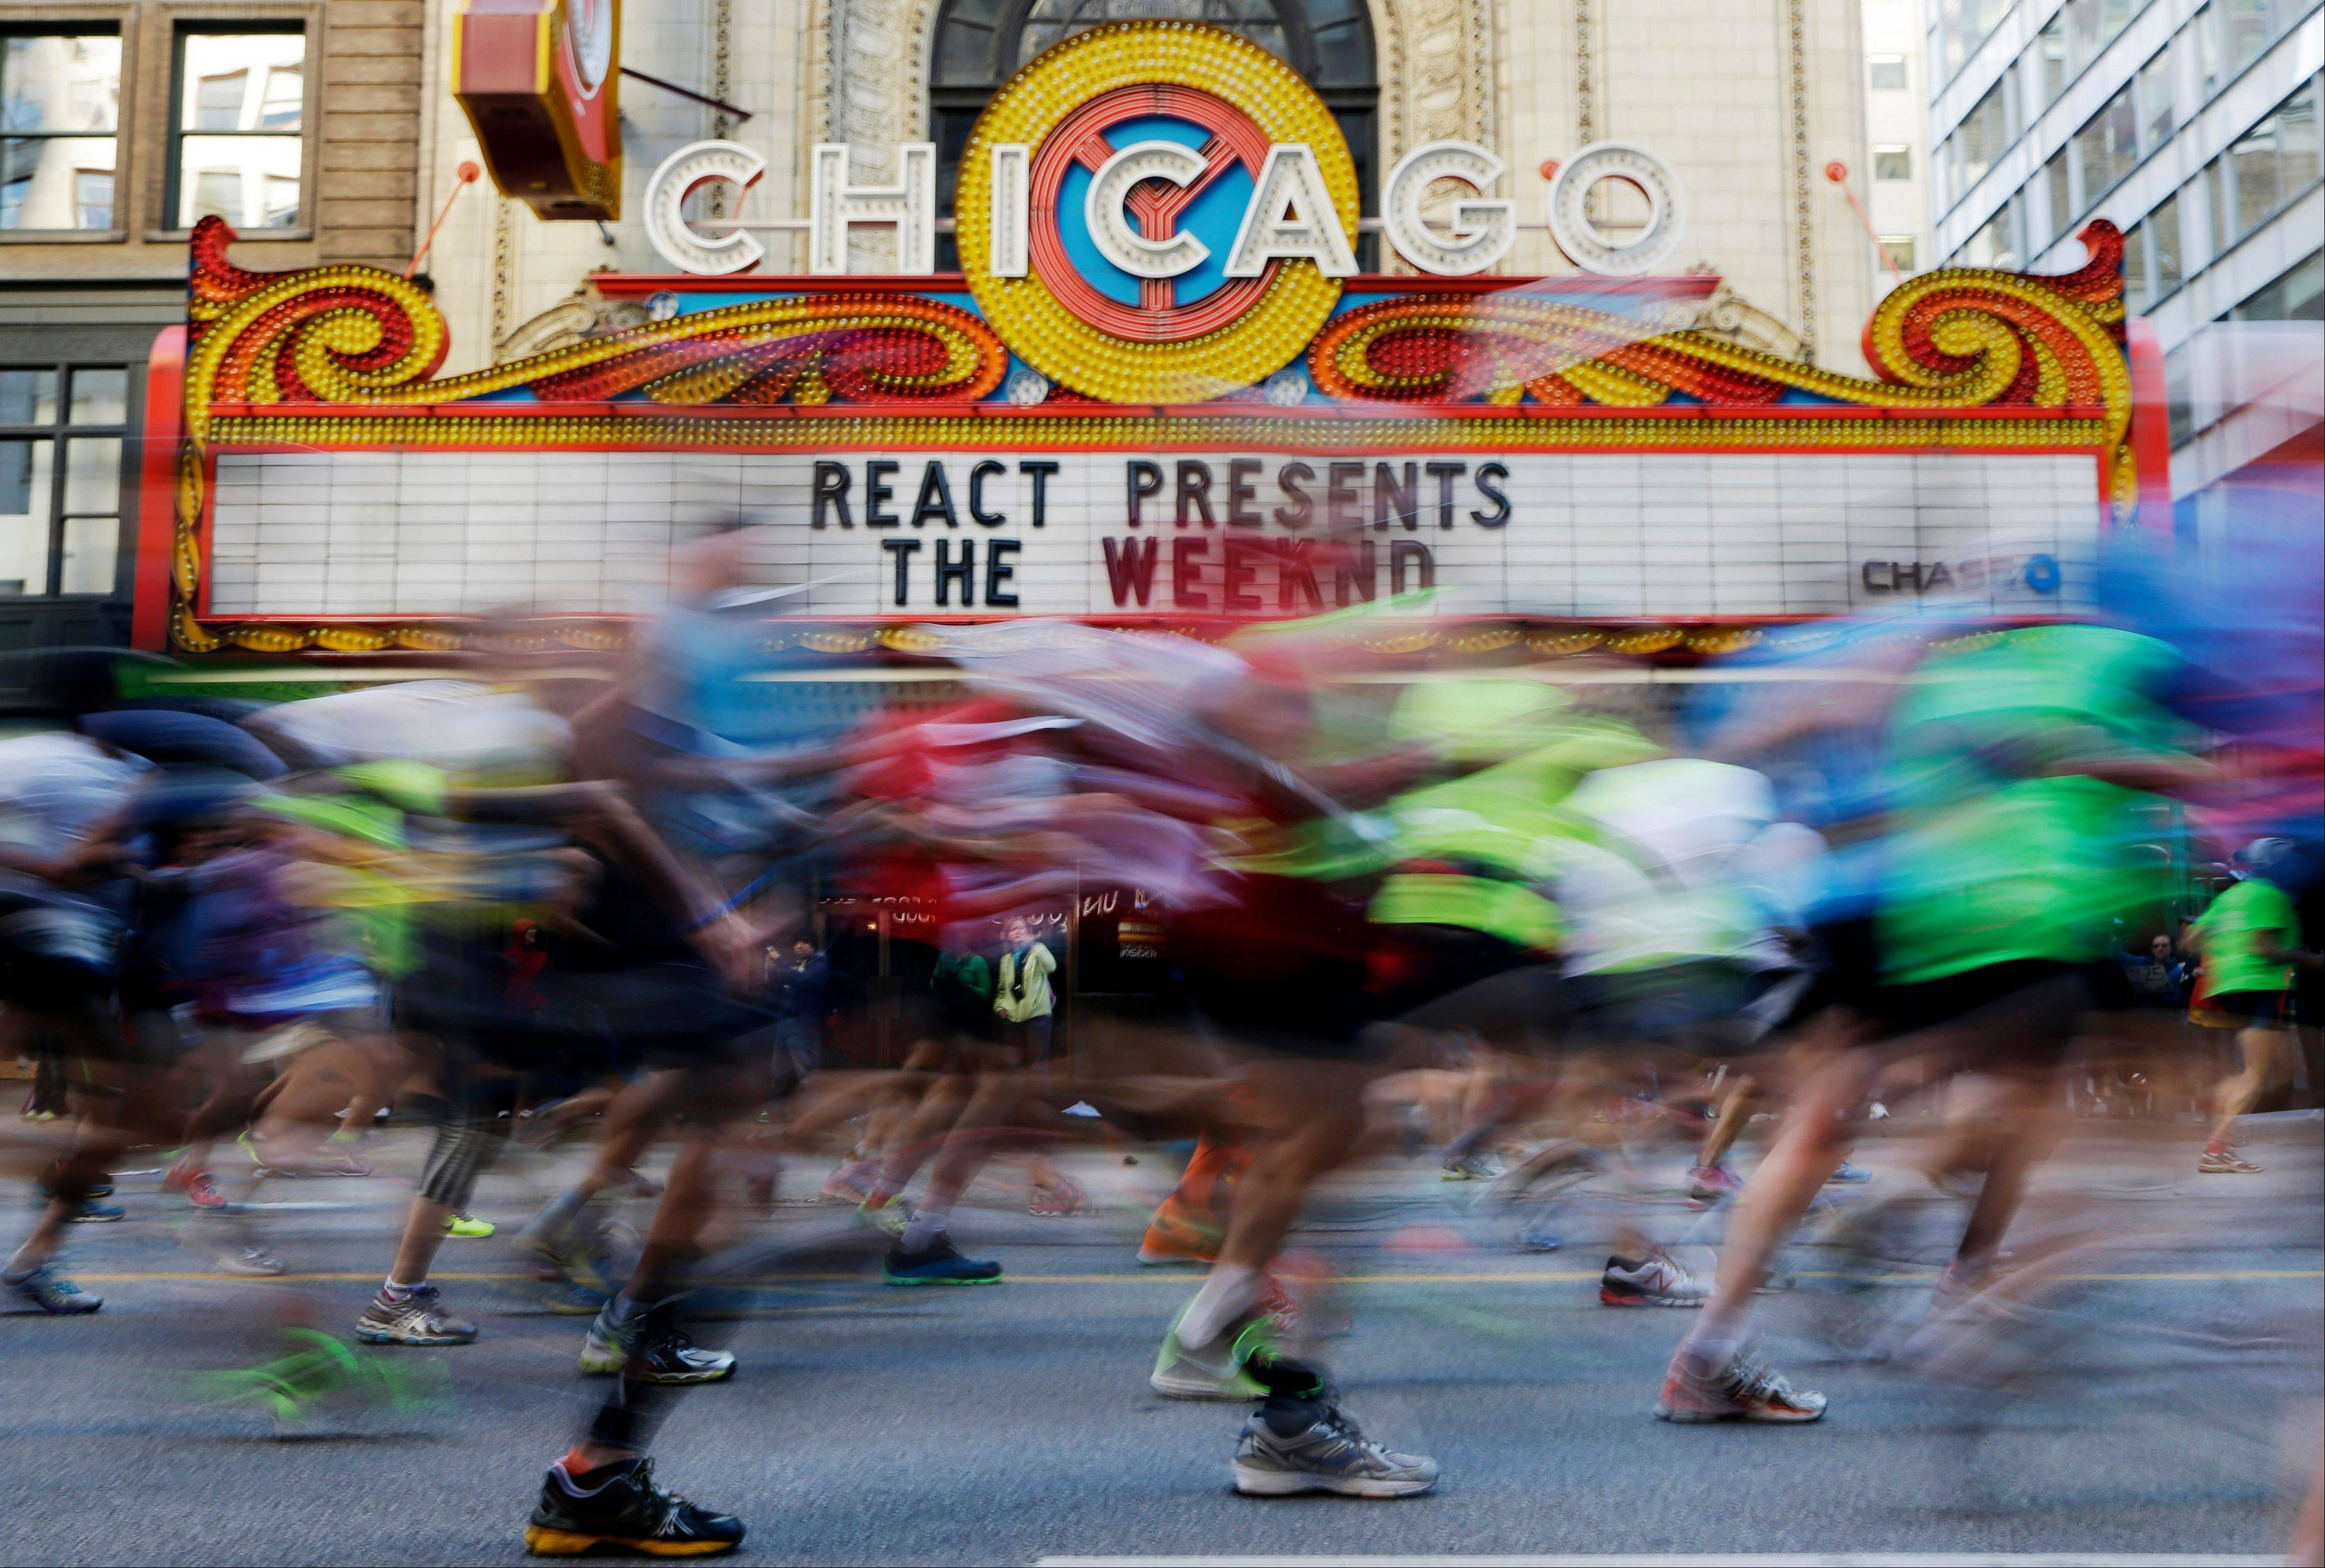 Runners participate in the Chicago Marathon in Chicago, Sunday, Oct. 13, 2013, nearly six months after the Boston Marathon bombings, with more police officers lining race routes and spectator areas.